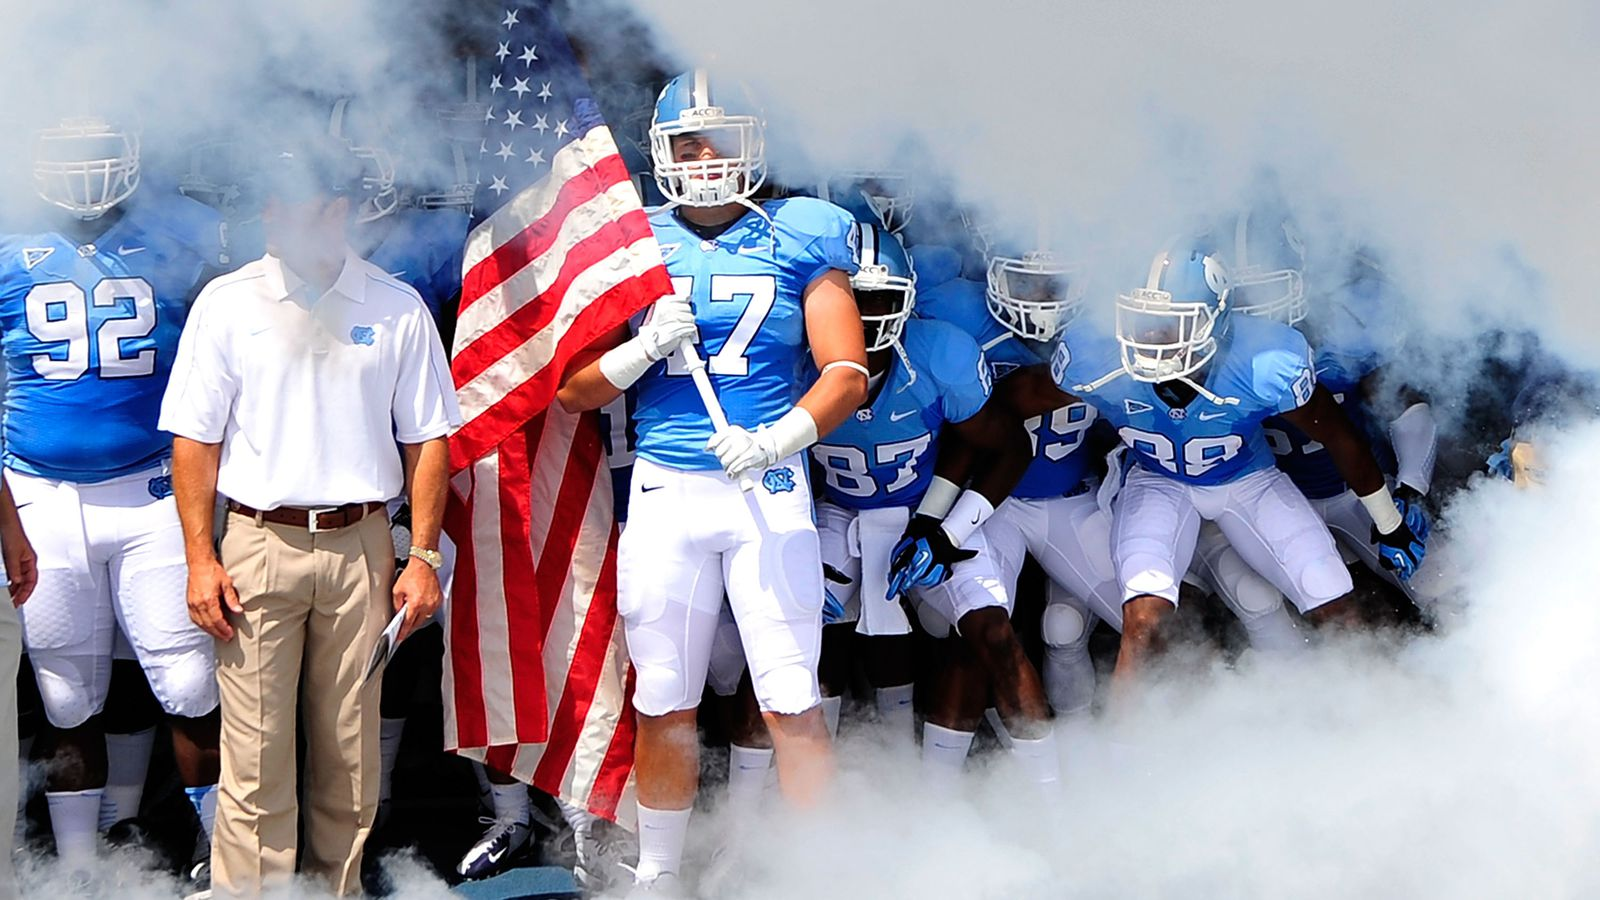 Unc Football Tar Heels Unveil Jersey Combo For Cal Game